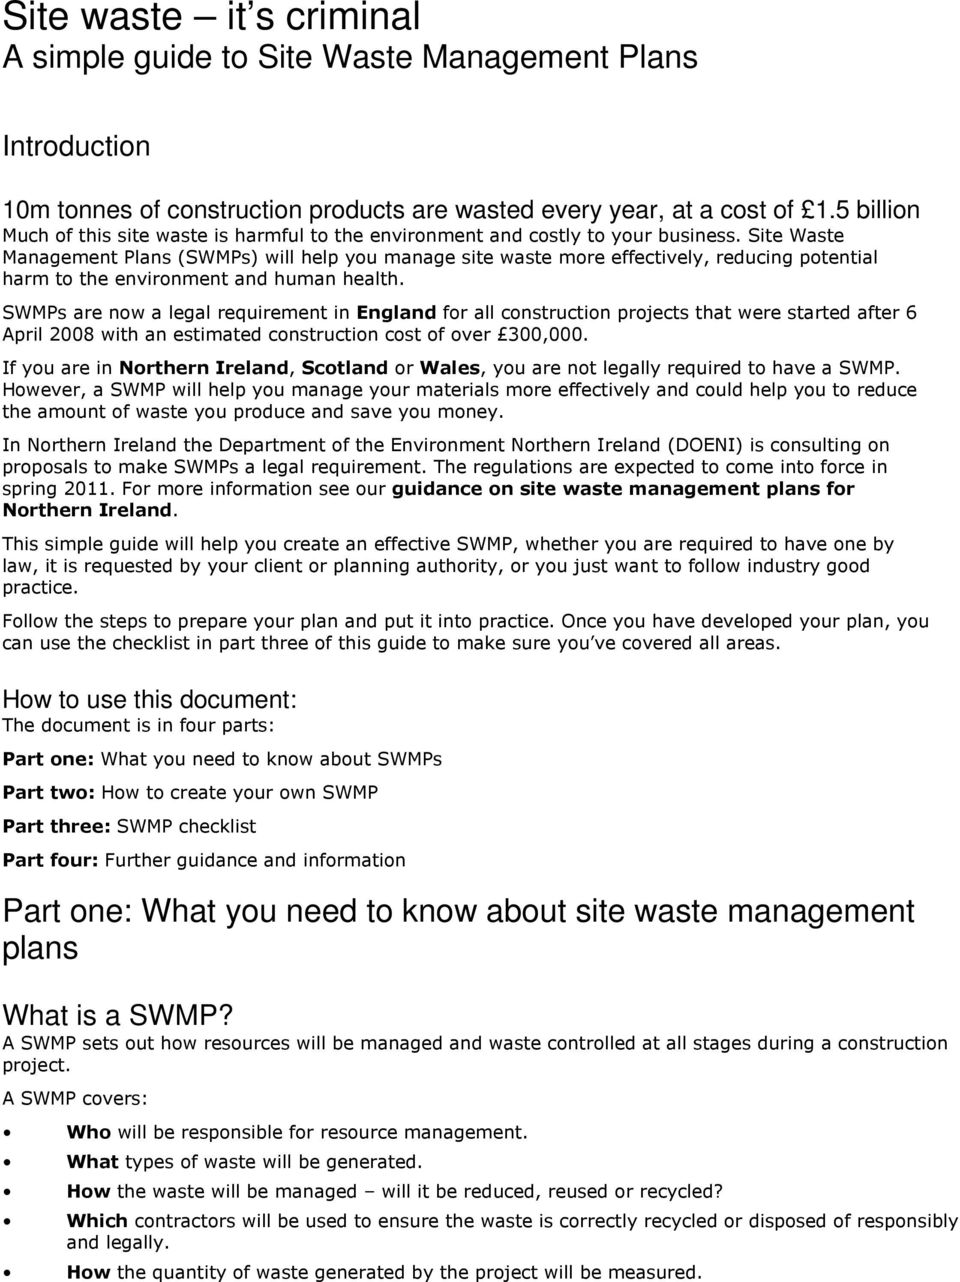 Site Waste Management Plans (SWMPs) will help you manage site waste more effectively, reducing potential harm to the environment and human health.